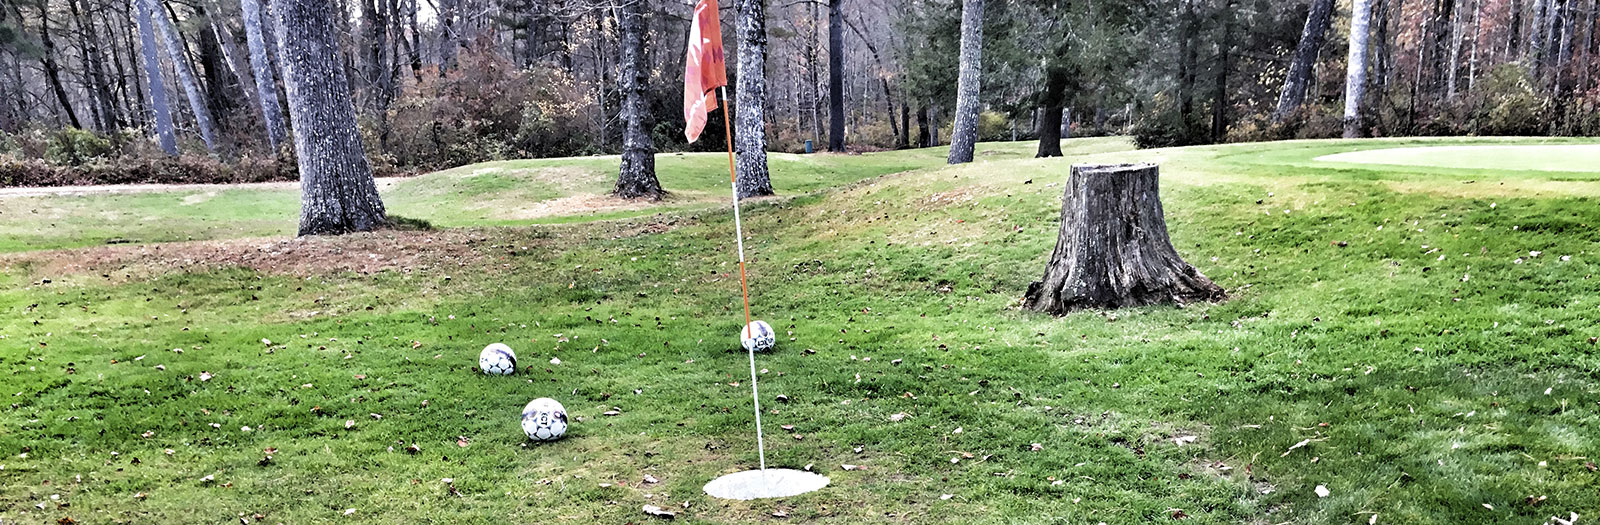 Photo of Red Bird Foot Golf